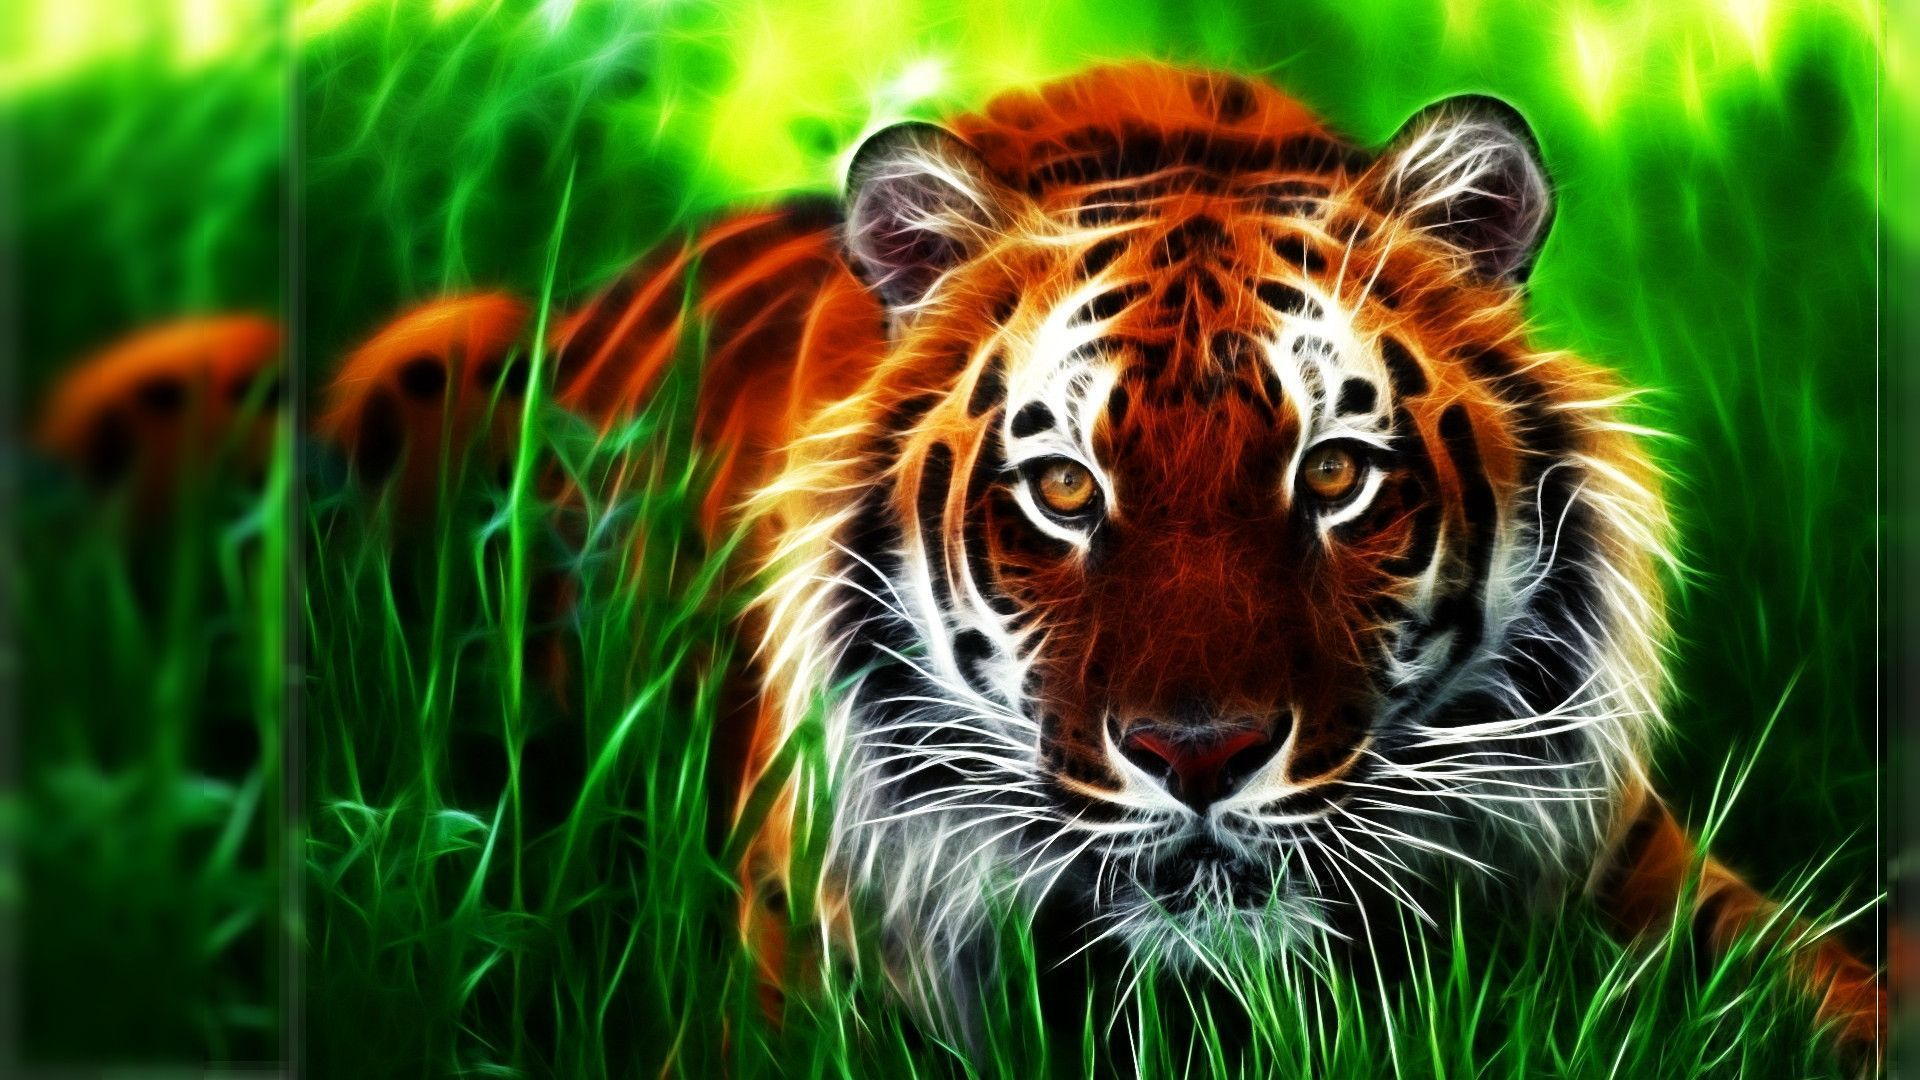 Full Hd 3d Wallpapers 1920x1080 See More On Classy Bro Imagenes De Tigres Animales Animados Fractales